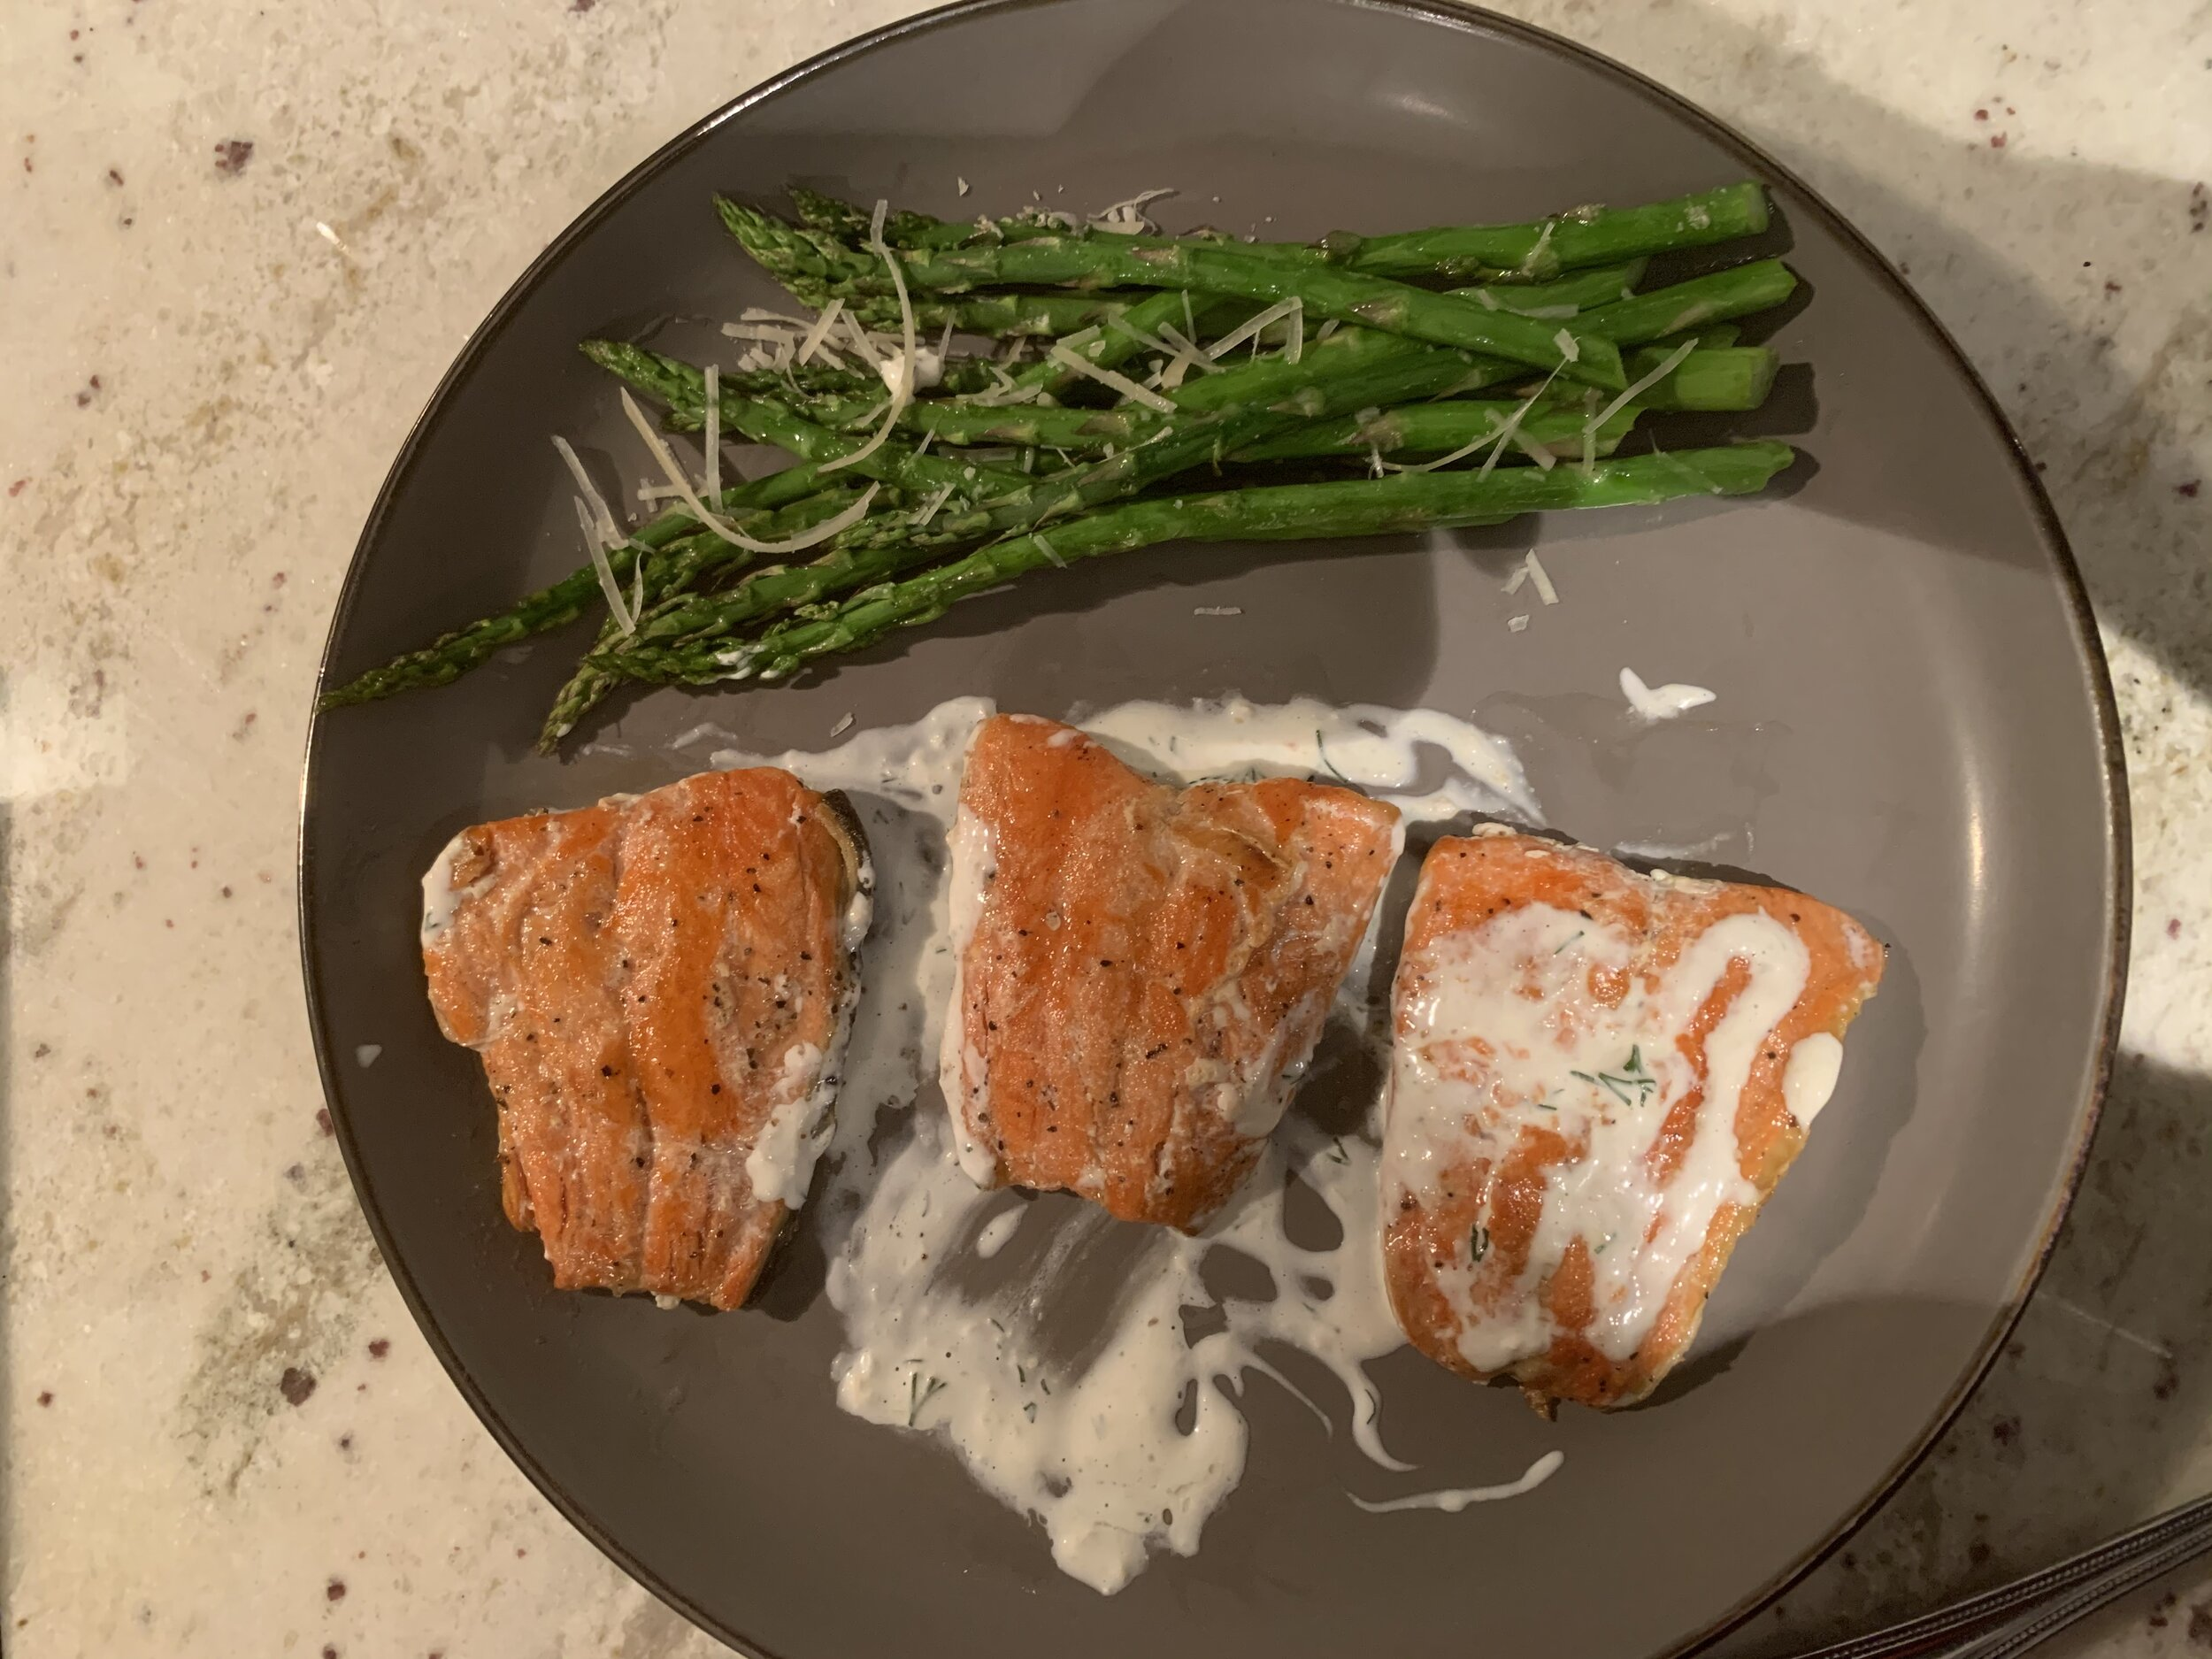 Deidre's final product--salmon with dill sauce & roasted asparagus sess. 6.jpg